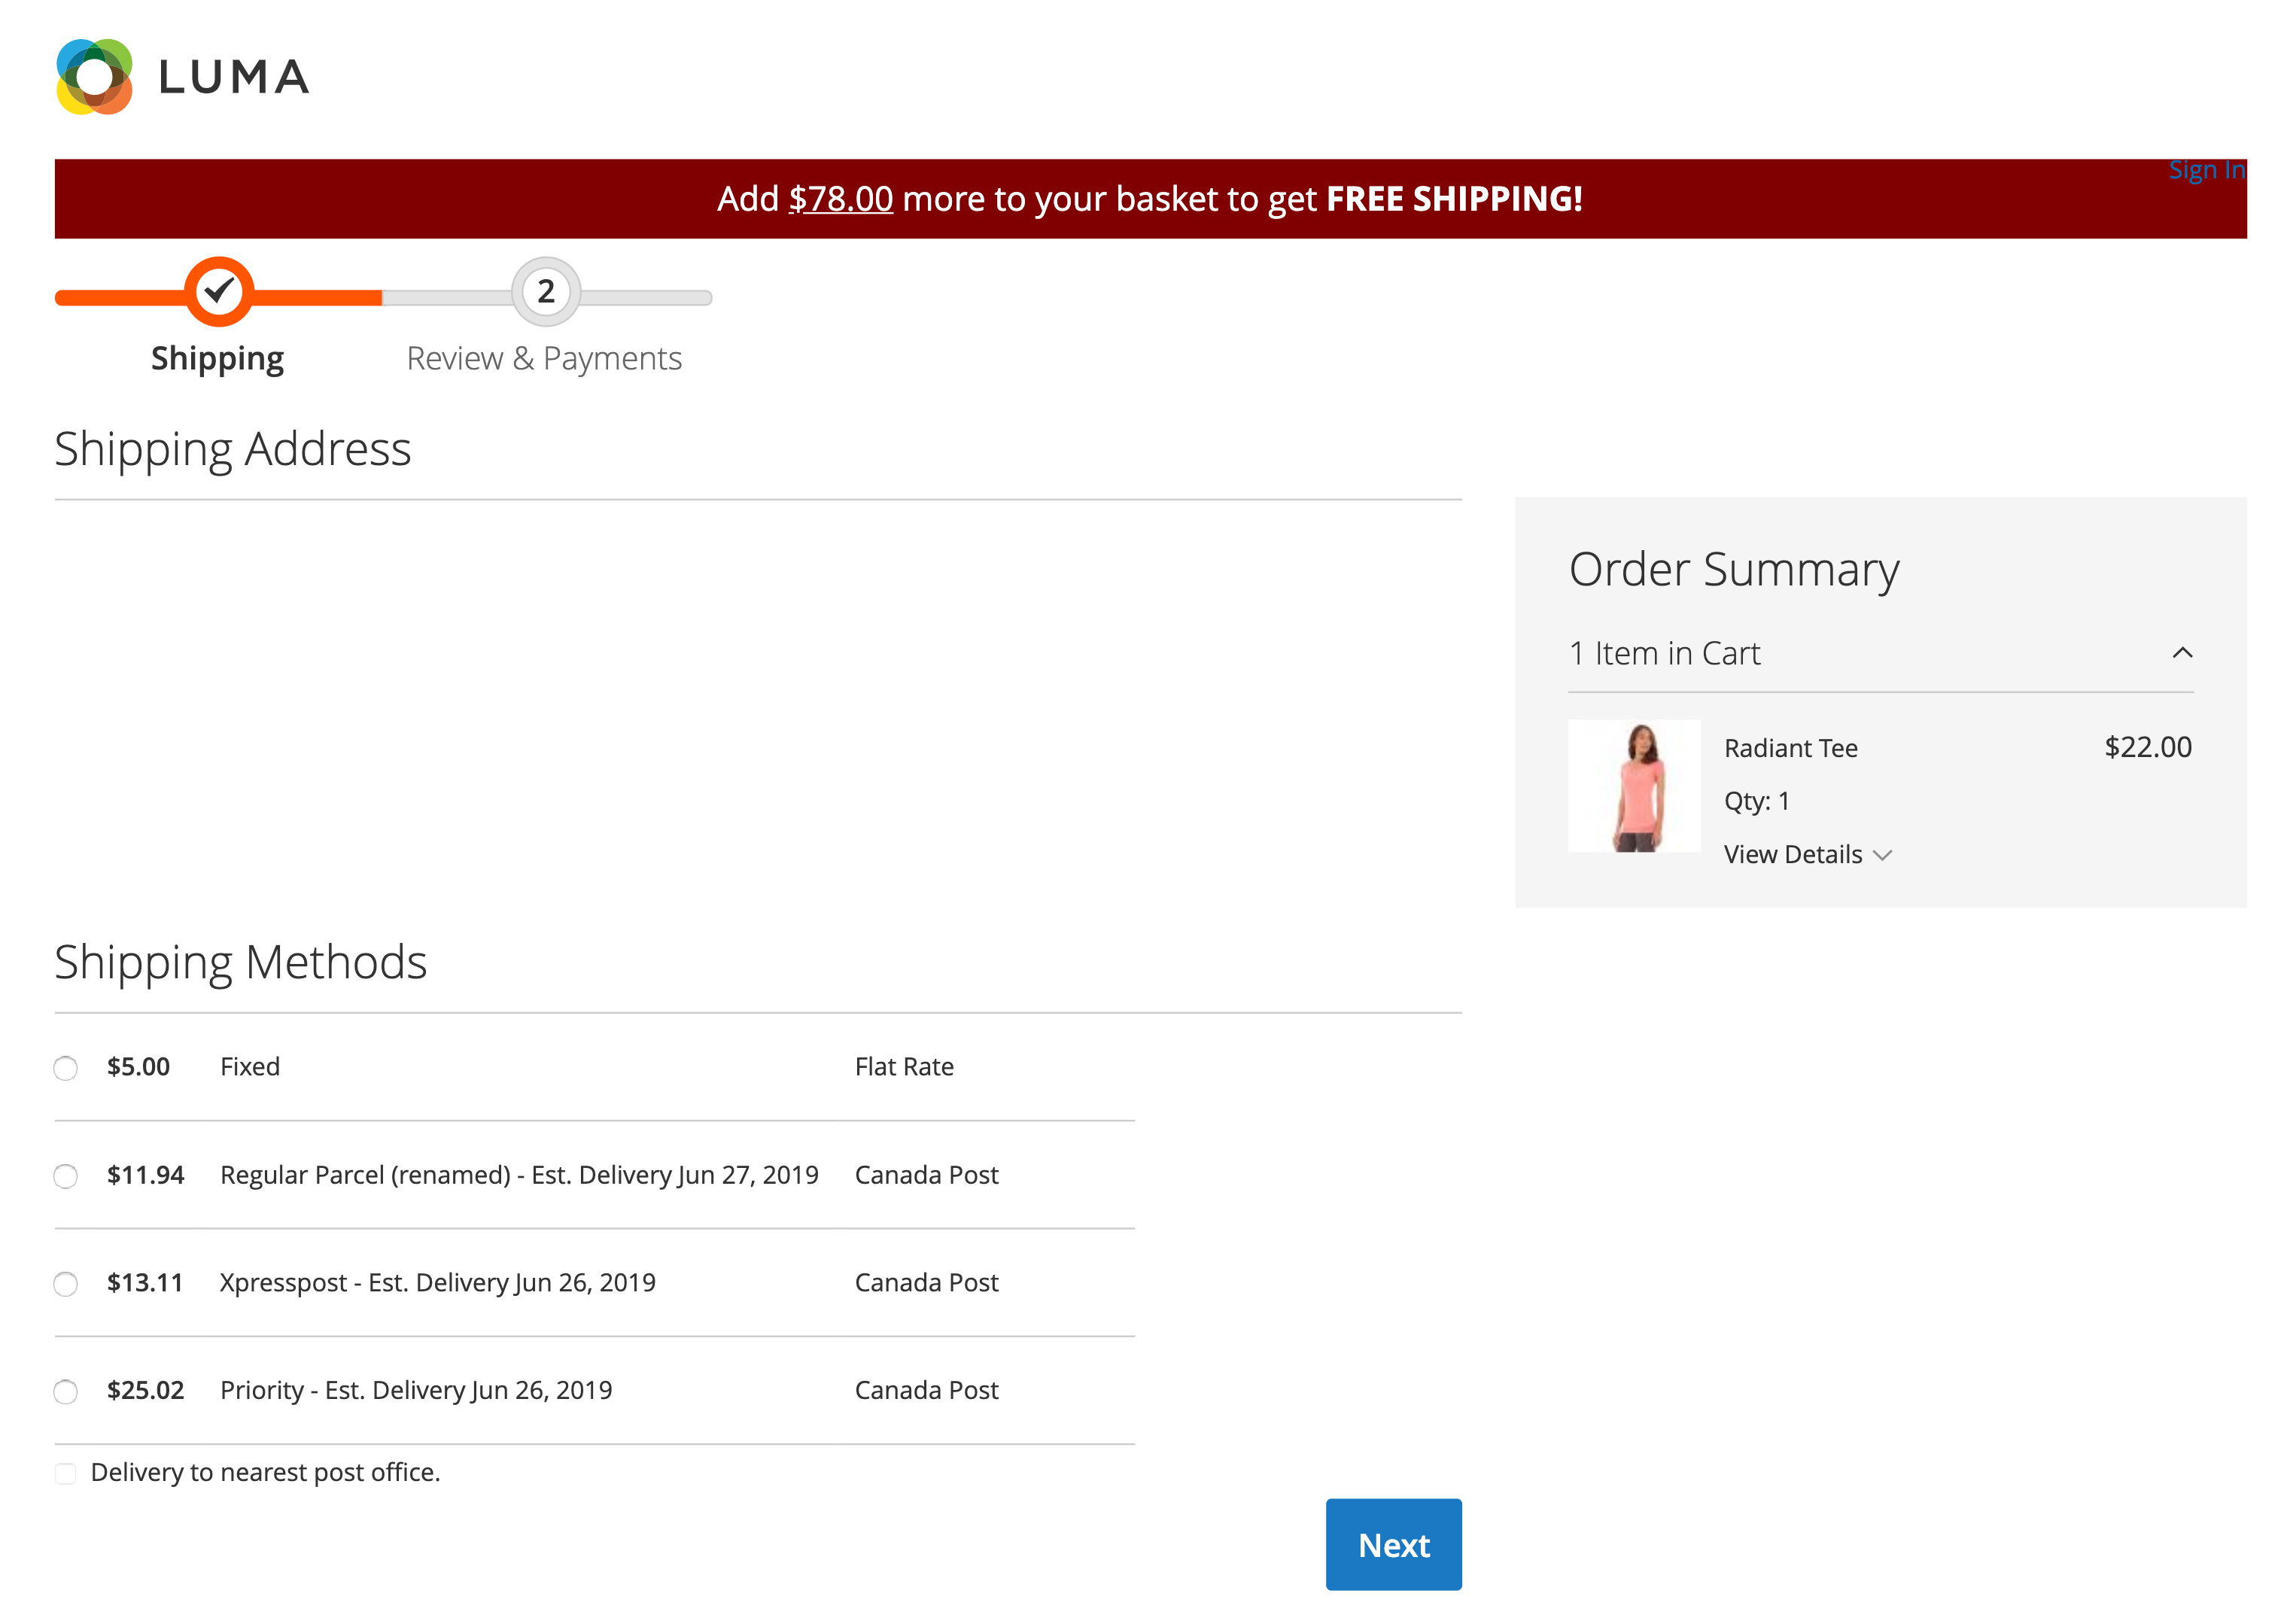 The checkout page for LUMA, an e-commerce store, displays shipping costs and delivery dates for the customer.